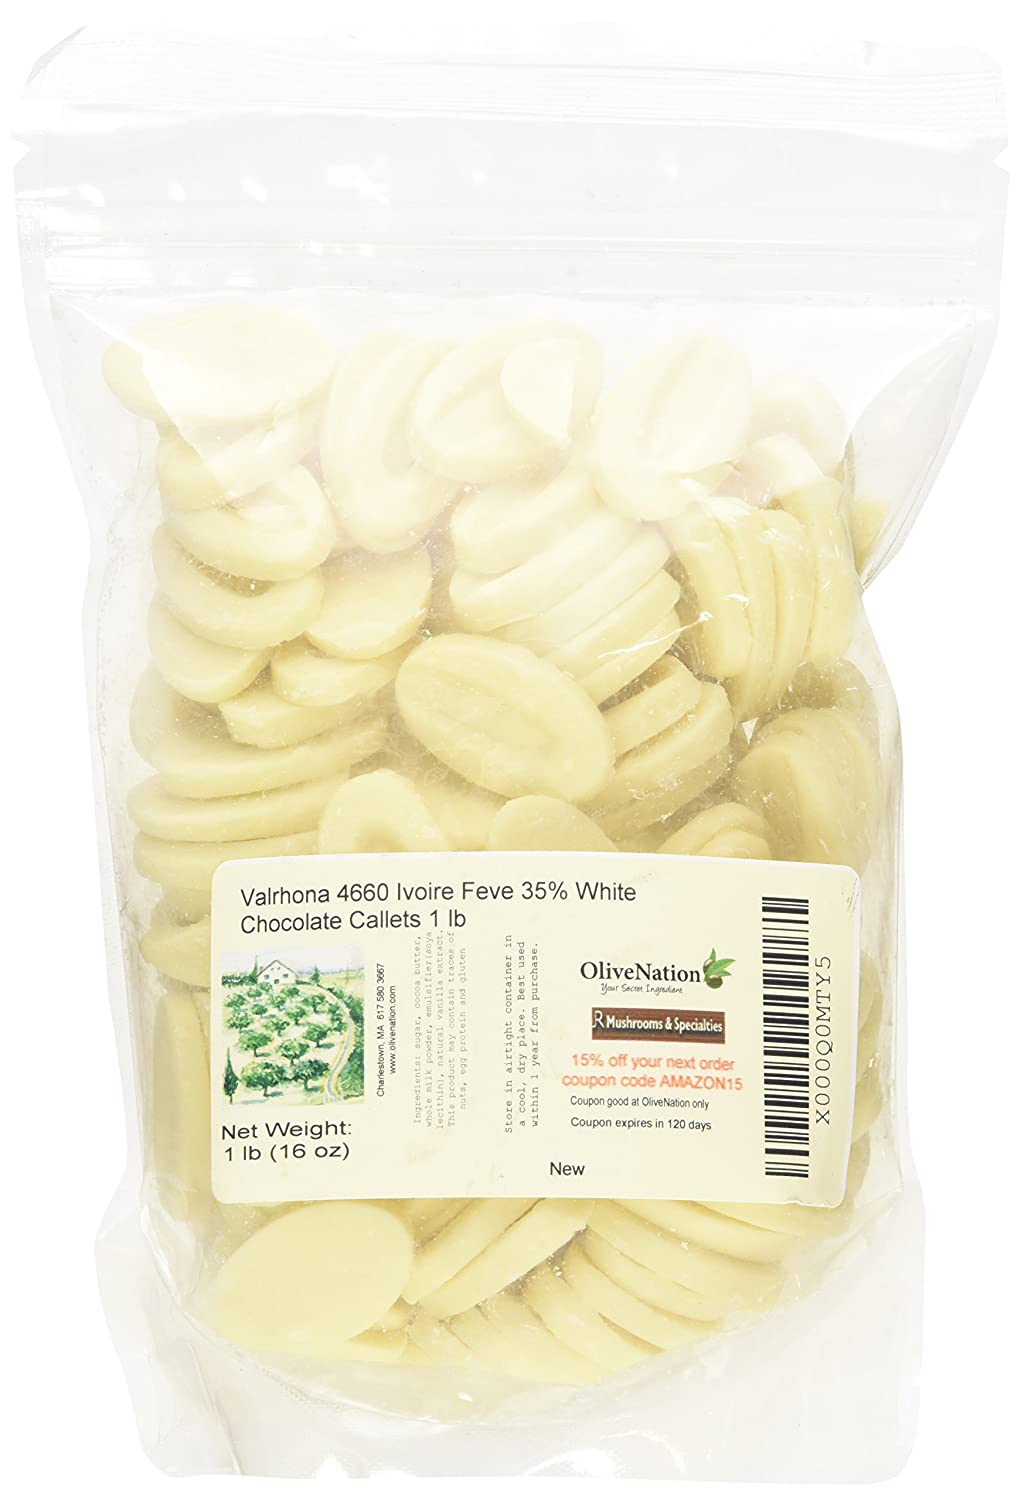 Valrhona Ivoire White Chocolate Feves (Oval Discs) from OliveNation - 1 pound